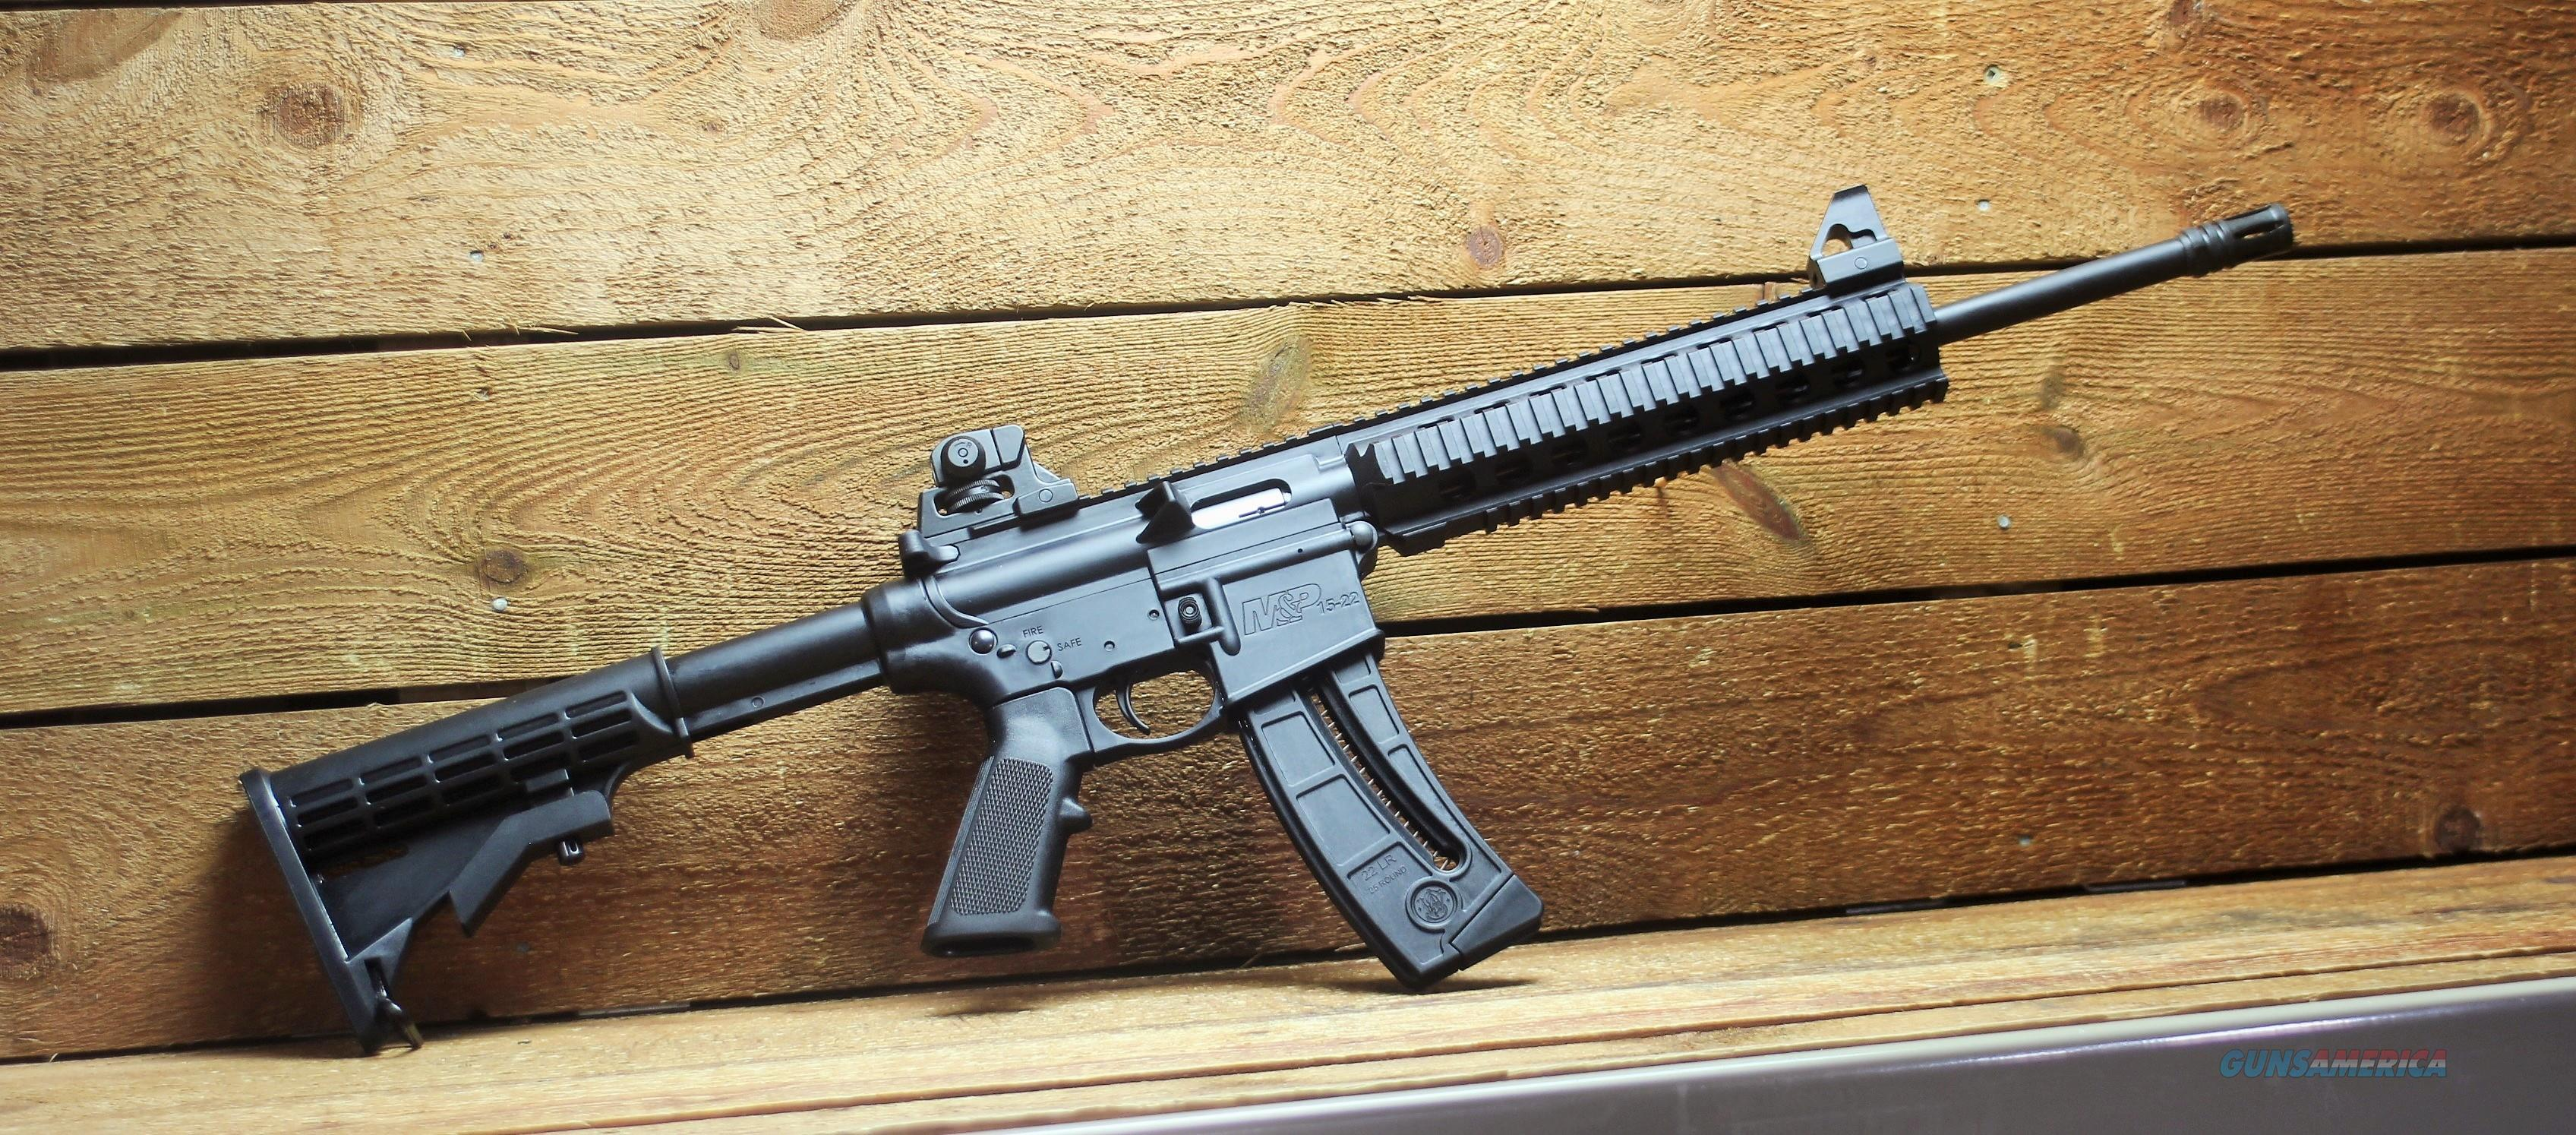 """EASY PAY $48.00 MONTHLY"" S&W M&P 15-22 - A1 .22 25rd mag 811033  6 Position CAR Stock   Guns > Rifles > Smith & Wesson Rifles > M&P"